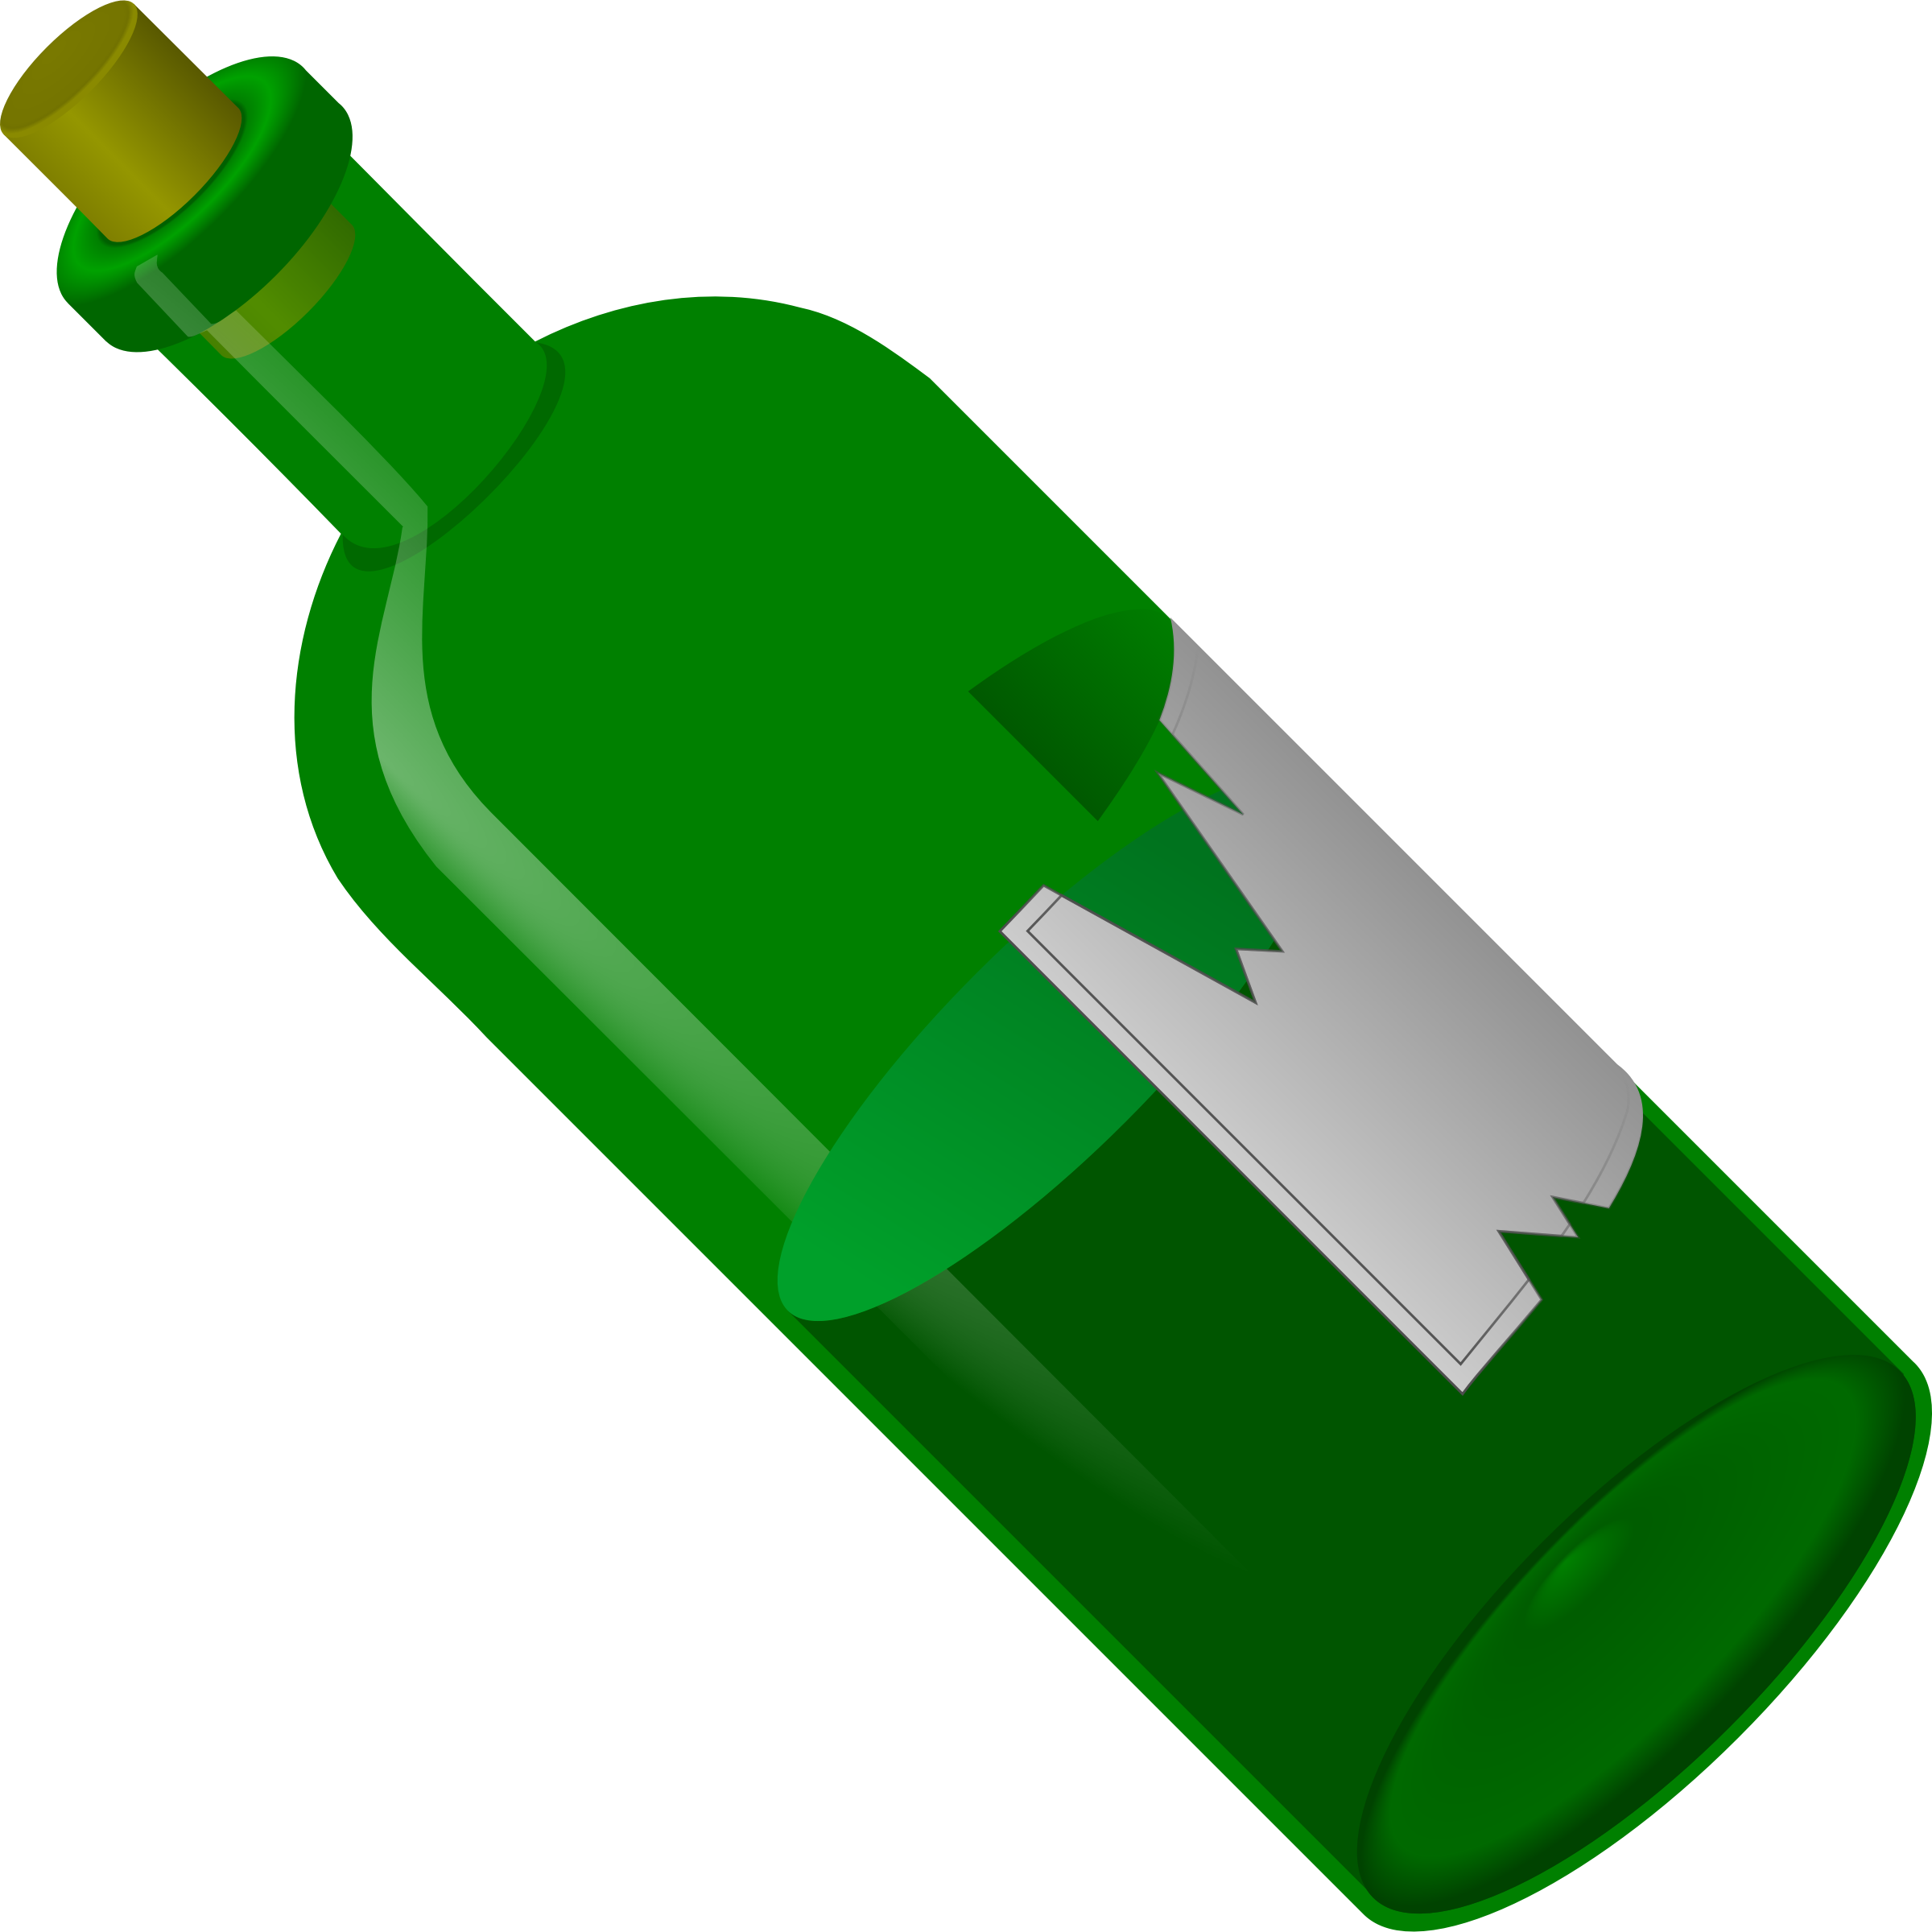 Clipart old big image. Water bottle vector png